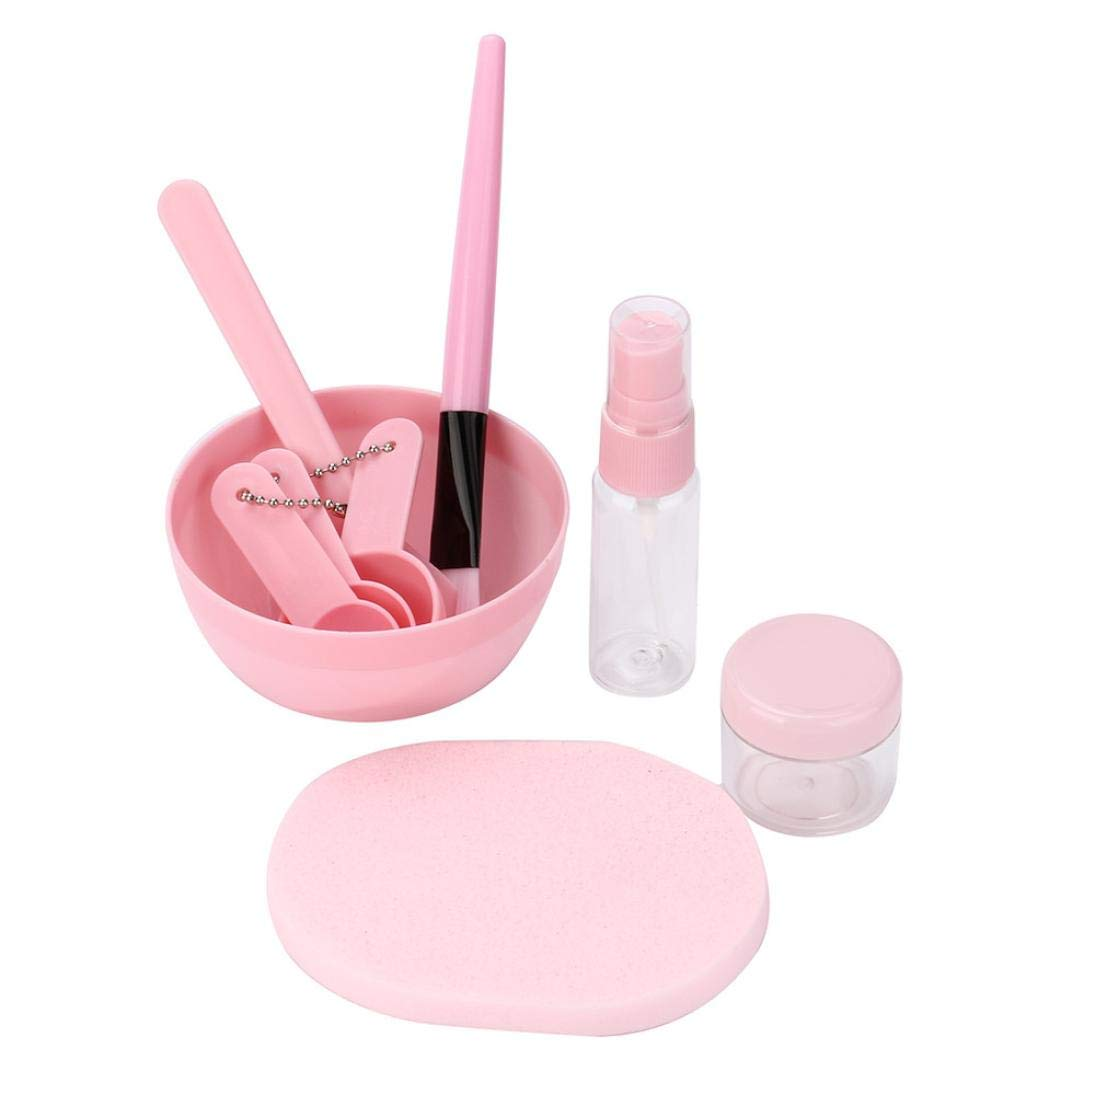 ❤JPJ(TM)❤️_Hot sale 1 Set 9 in 1 Fashion Mixing Bowl Brush Spoon Stick Makeup Beauty Set for Facial Mask Tool (Pink)